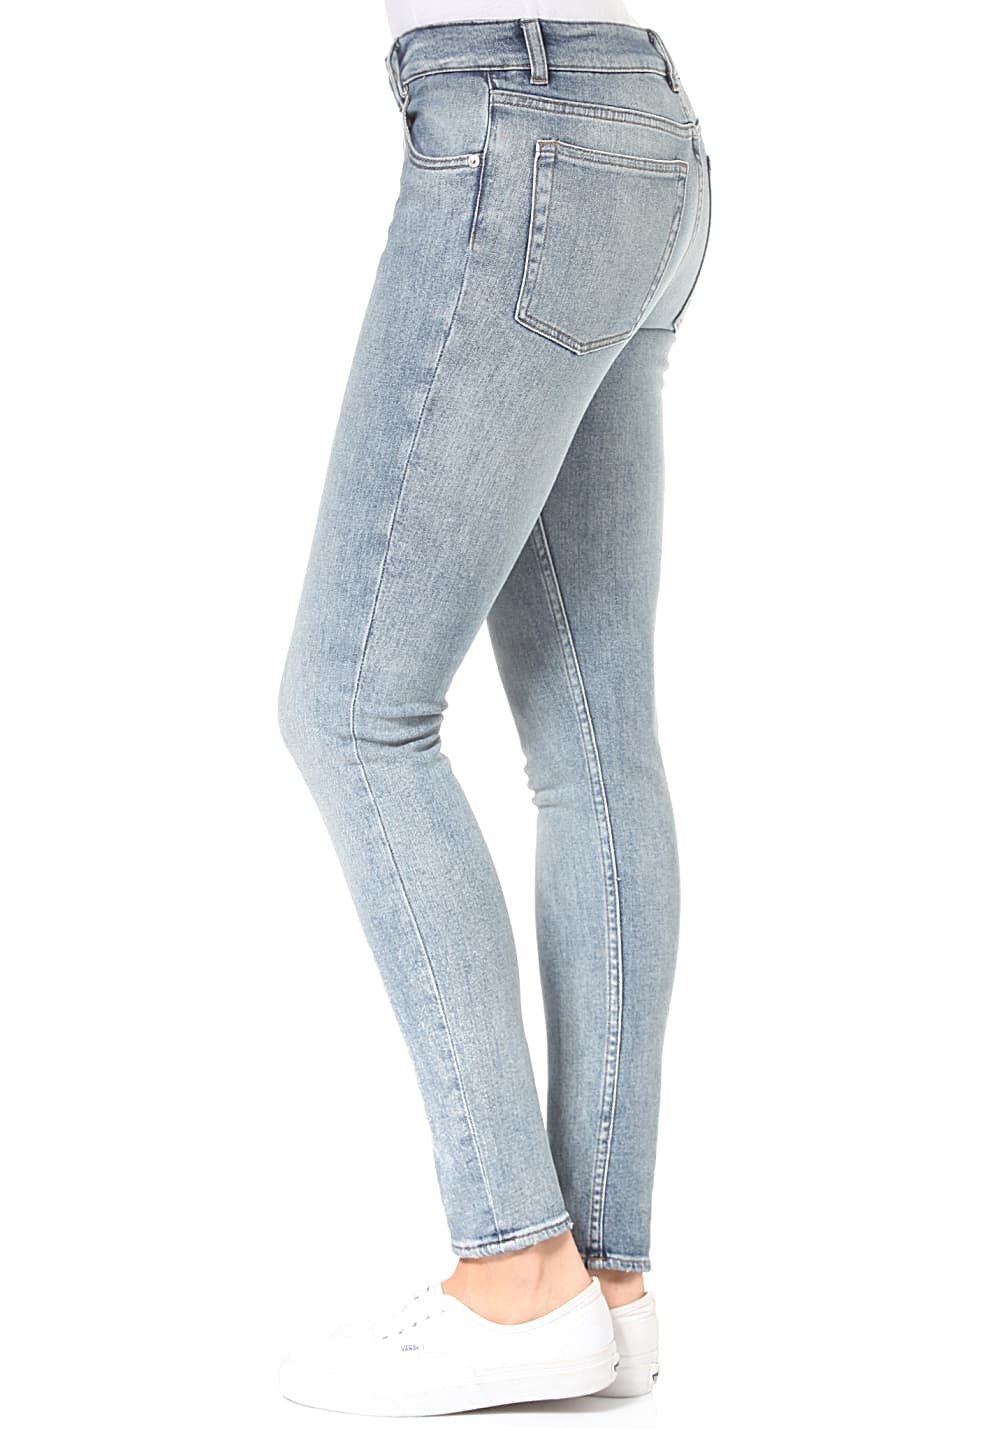 6dd17a44d64 Next. -28%. Cheap Monday. Low Skin - Denim Jeans for Women. Regular Price   Save 28% €49.95